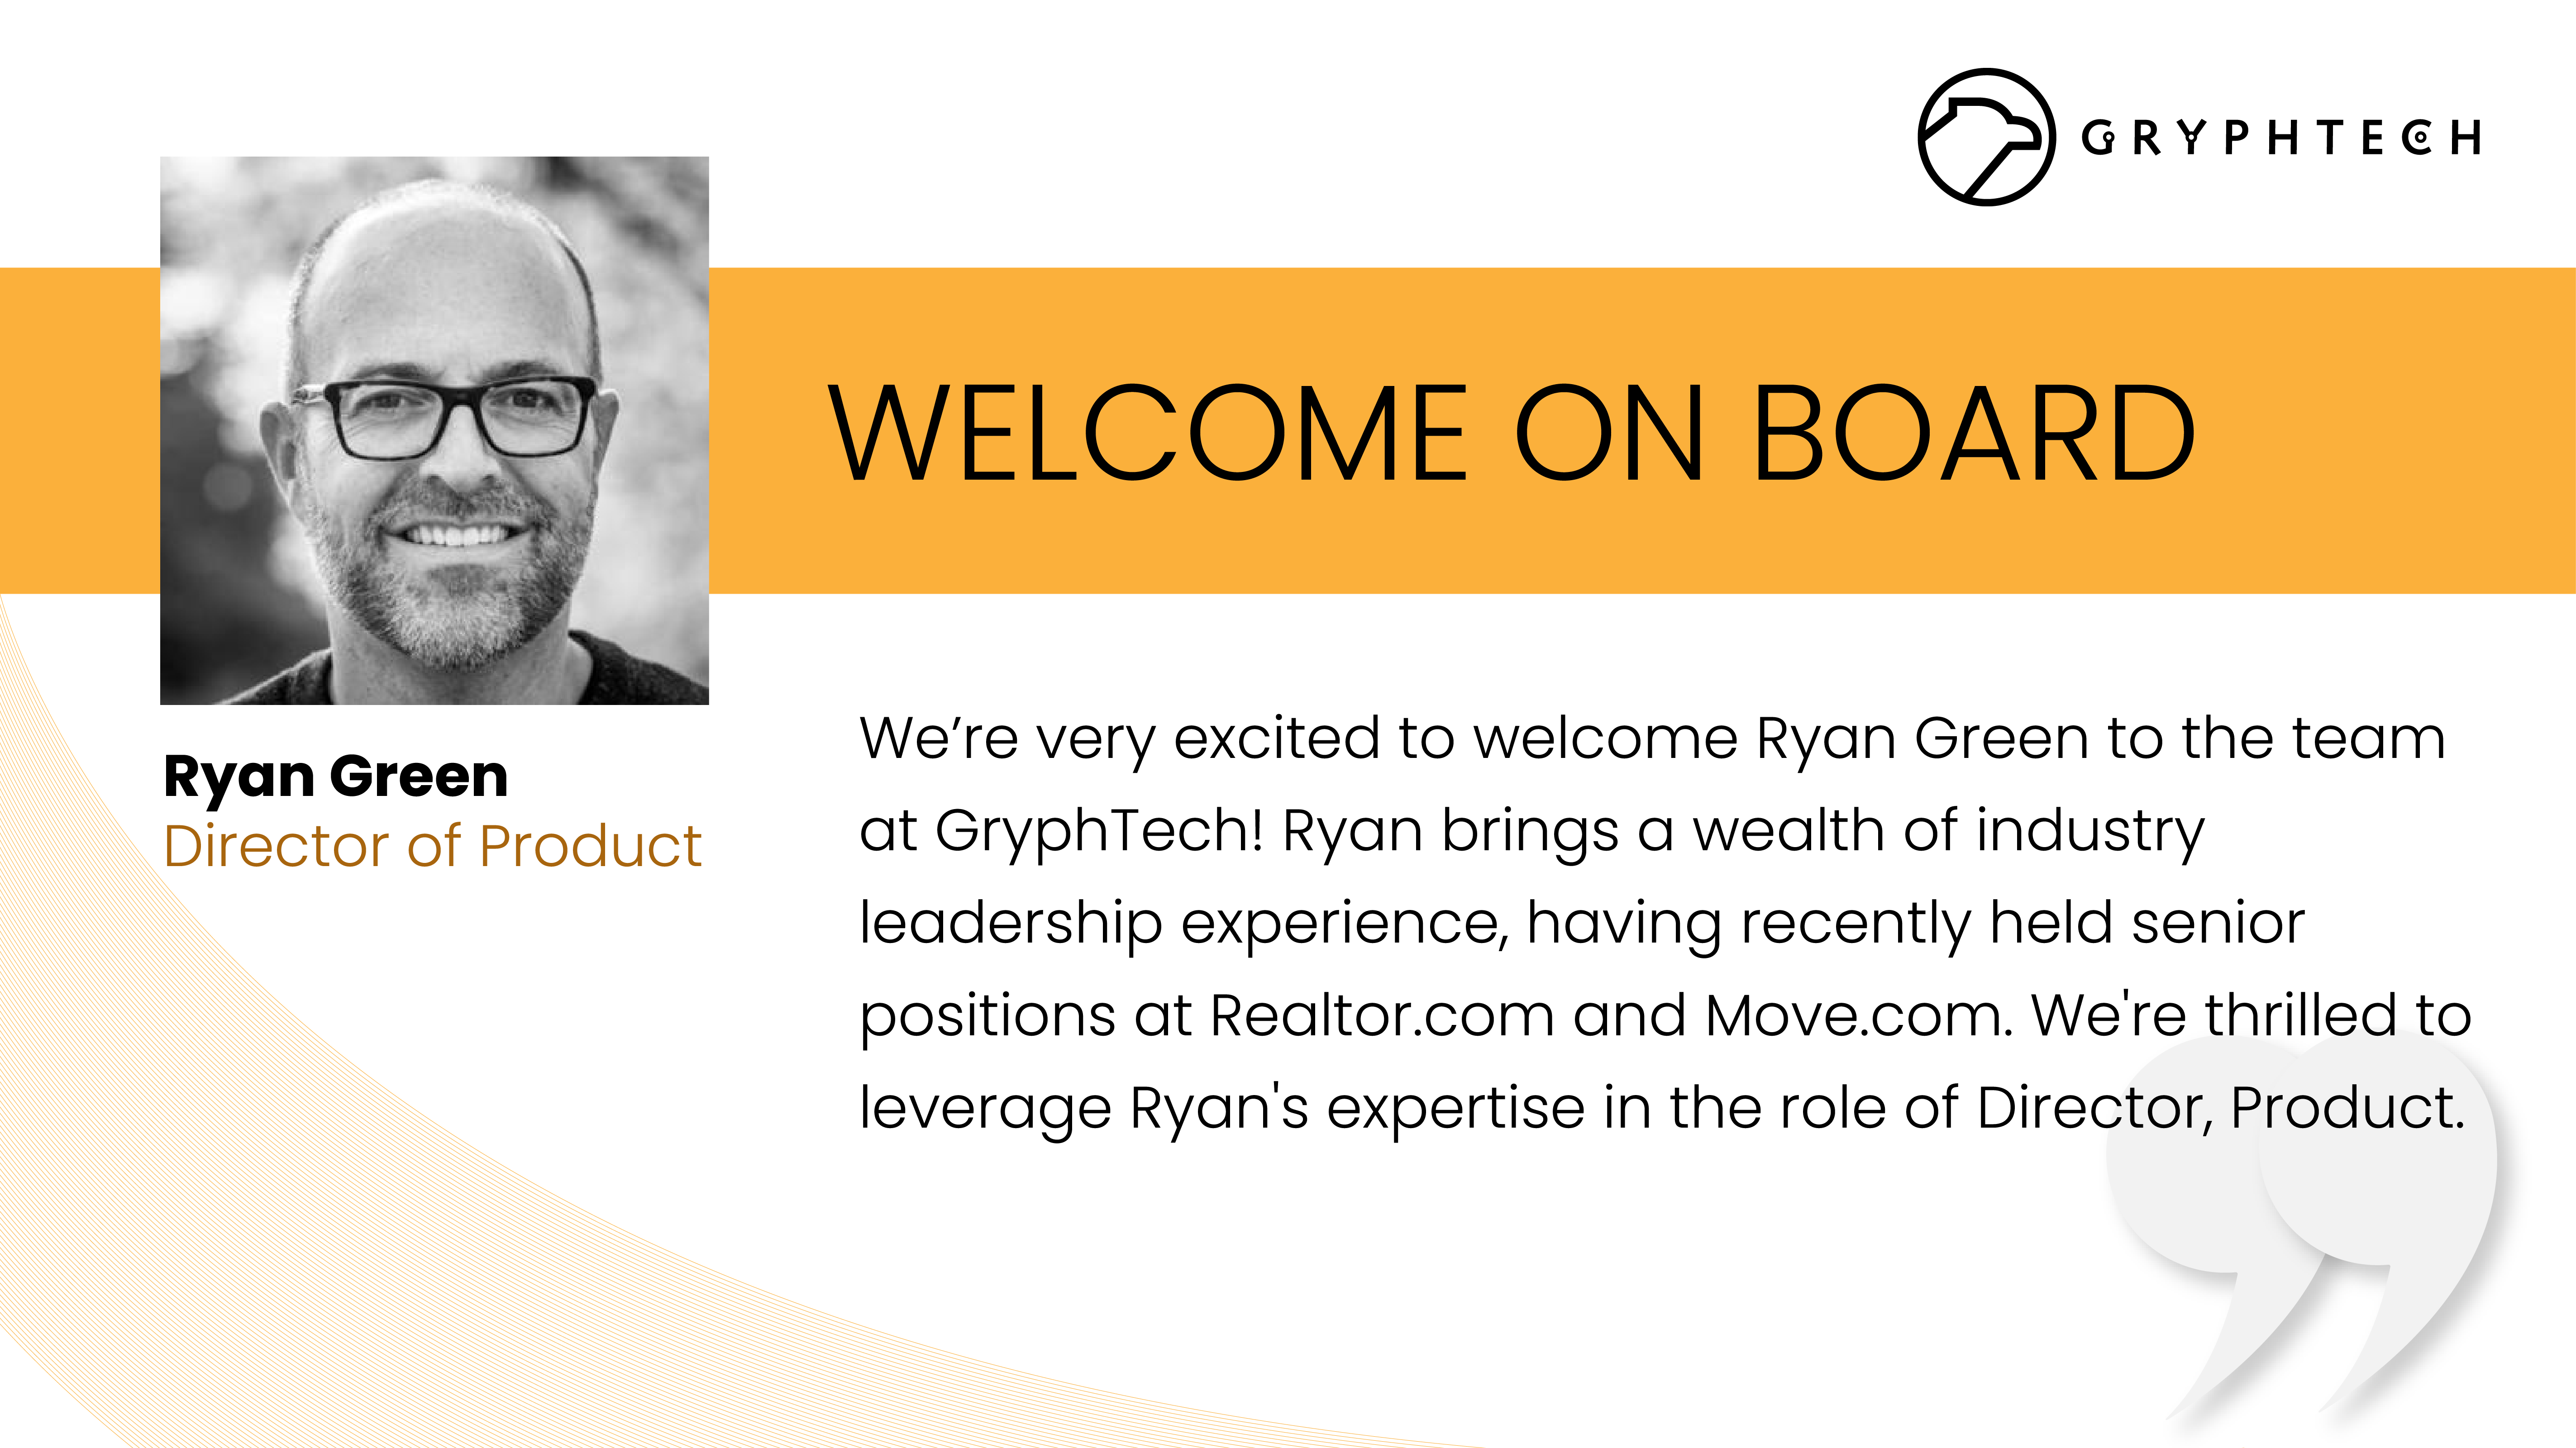 GryphTech Welcomes Ryan Green to the Executive Team as Director of Product